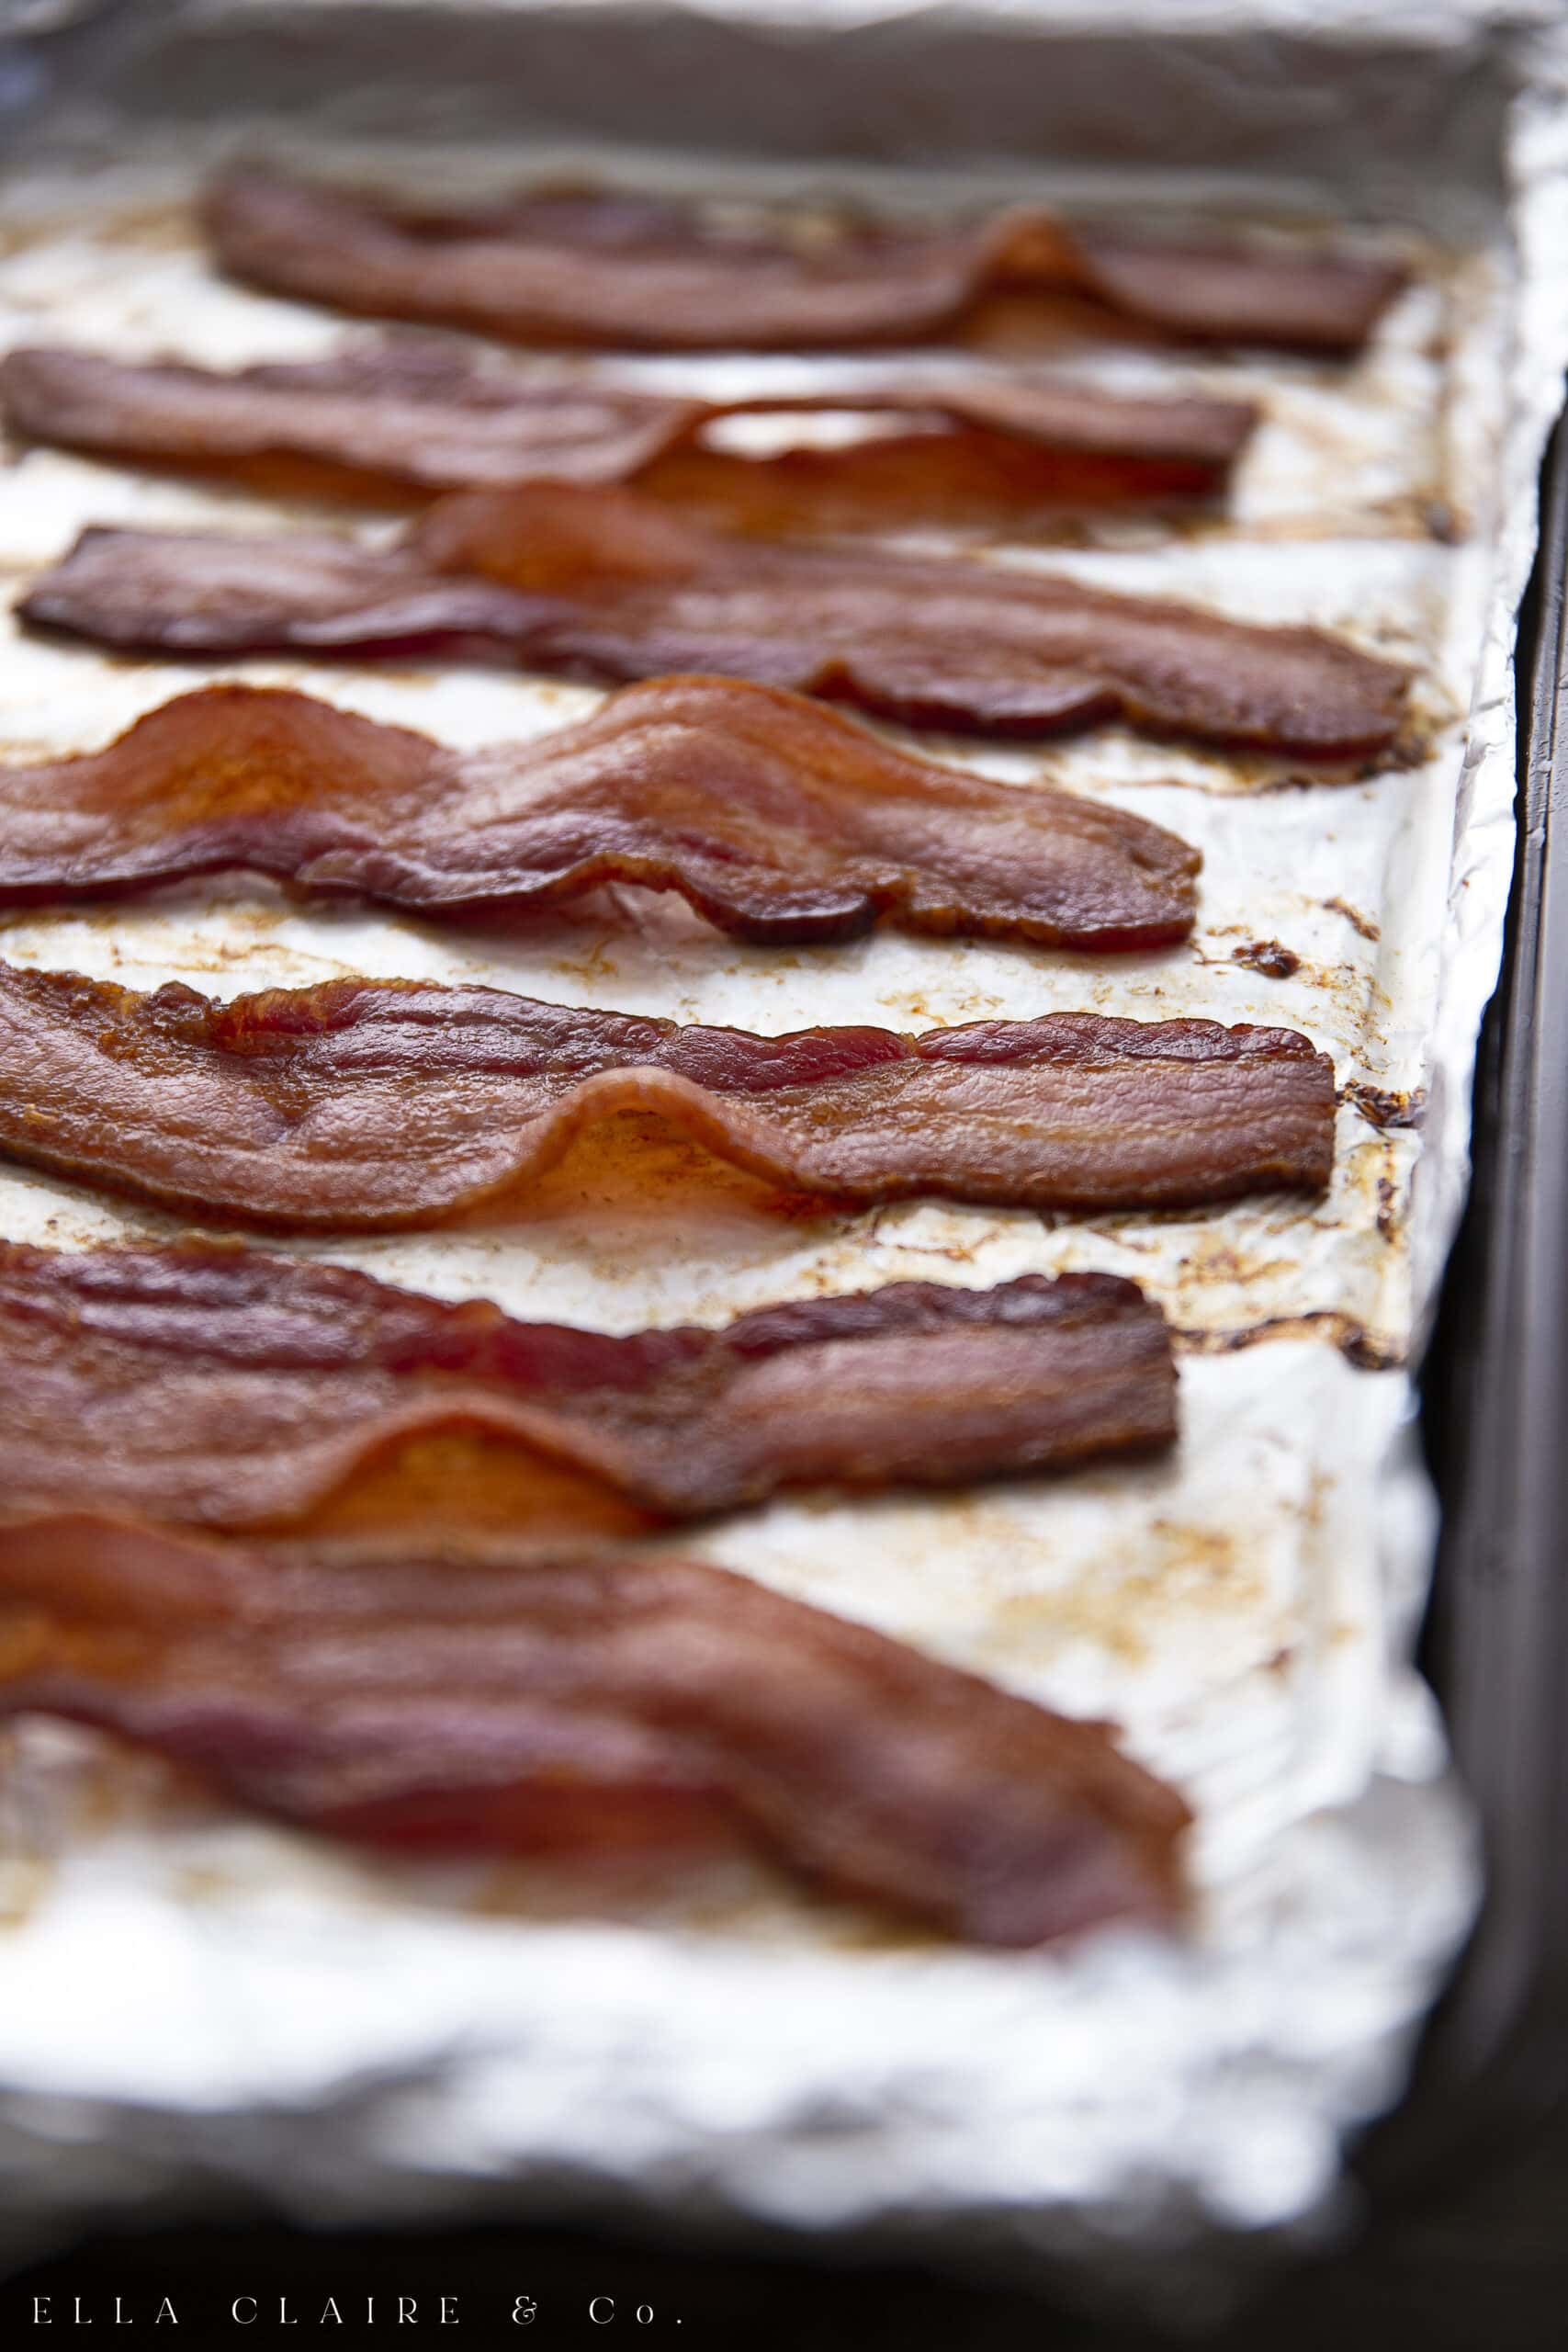 Bacon baked in a pan in the oven